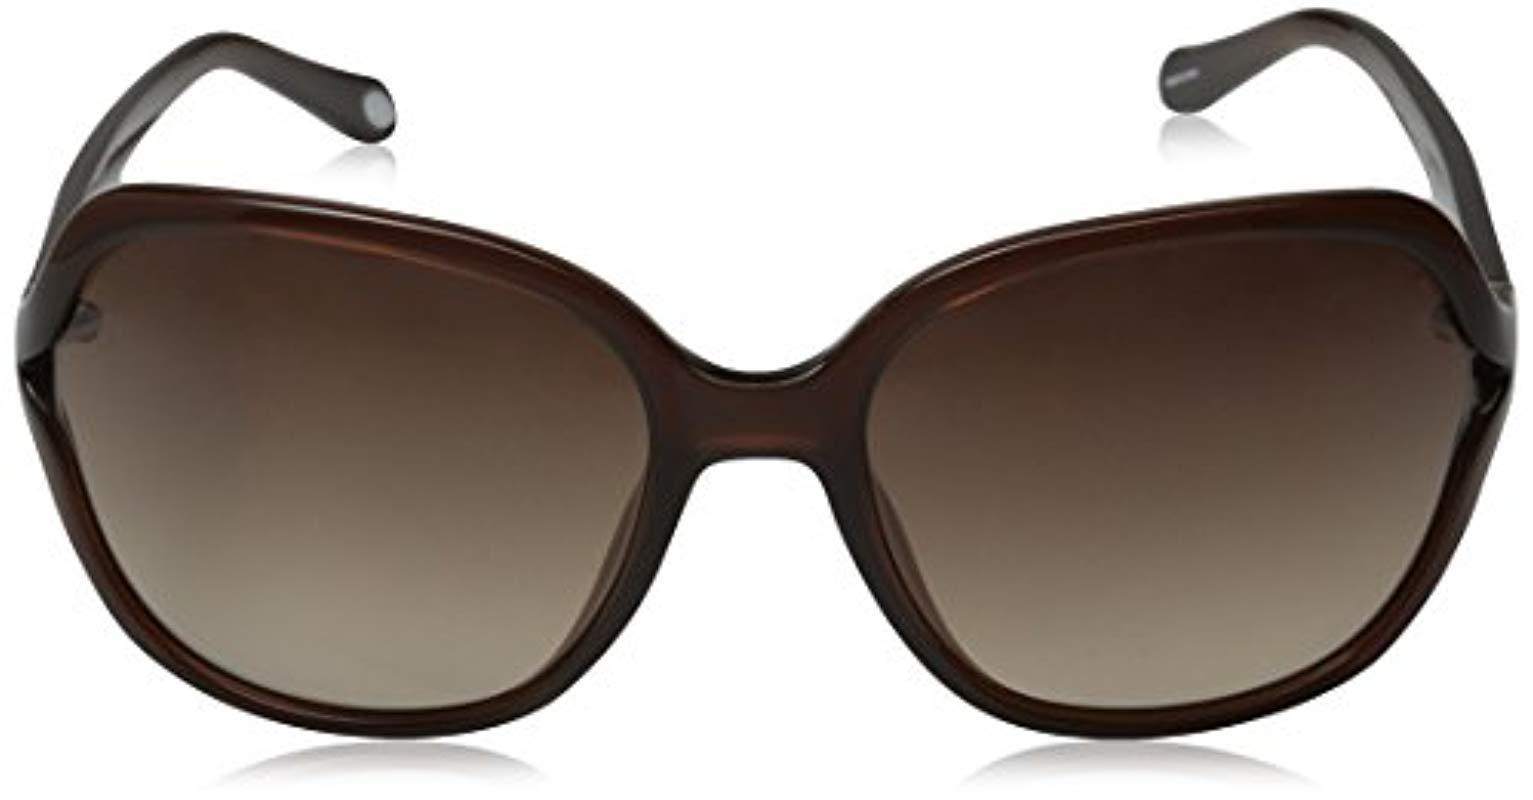 c56be269b1 Lyst - Fossil Fos3004s Square Sunglasses in Brown - Save 39%